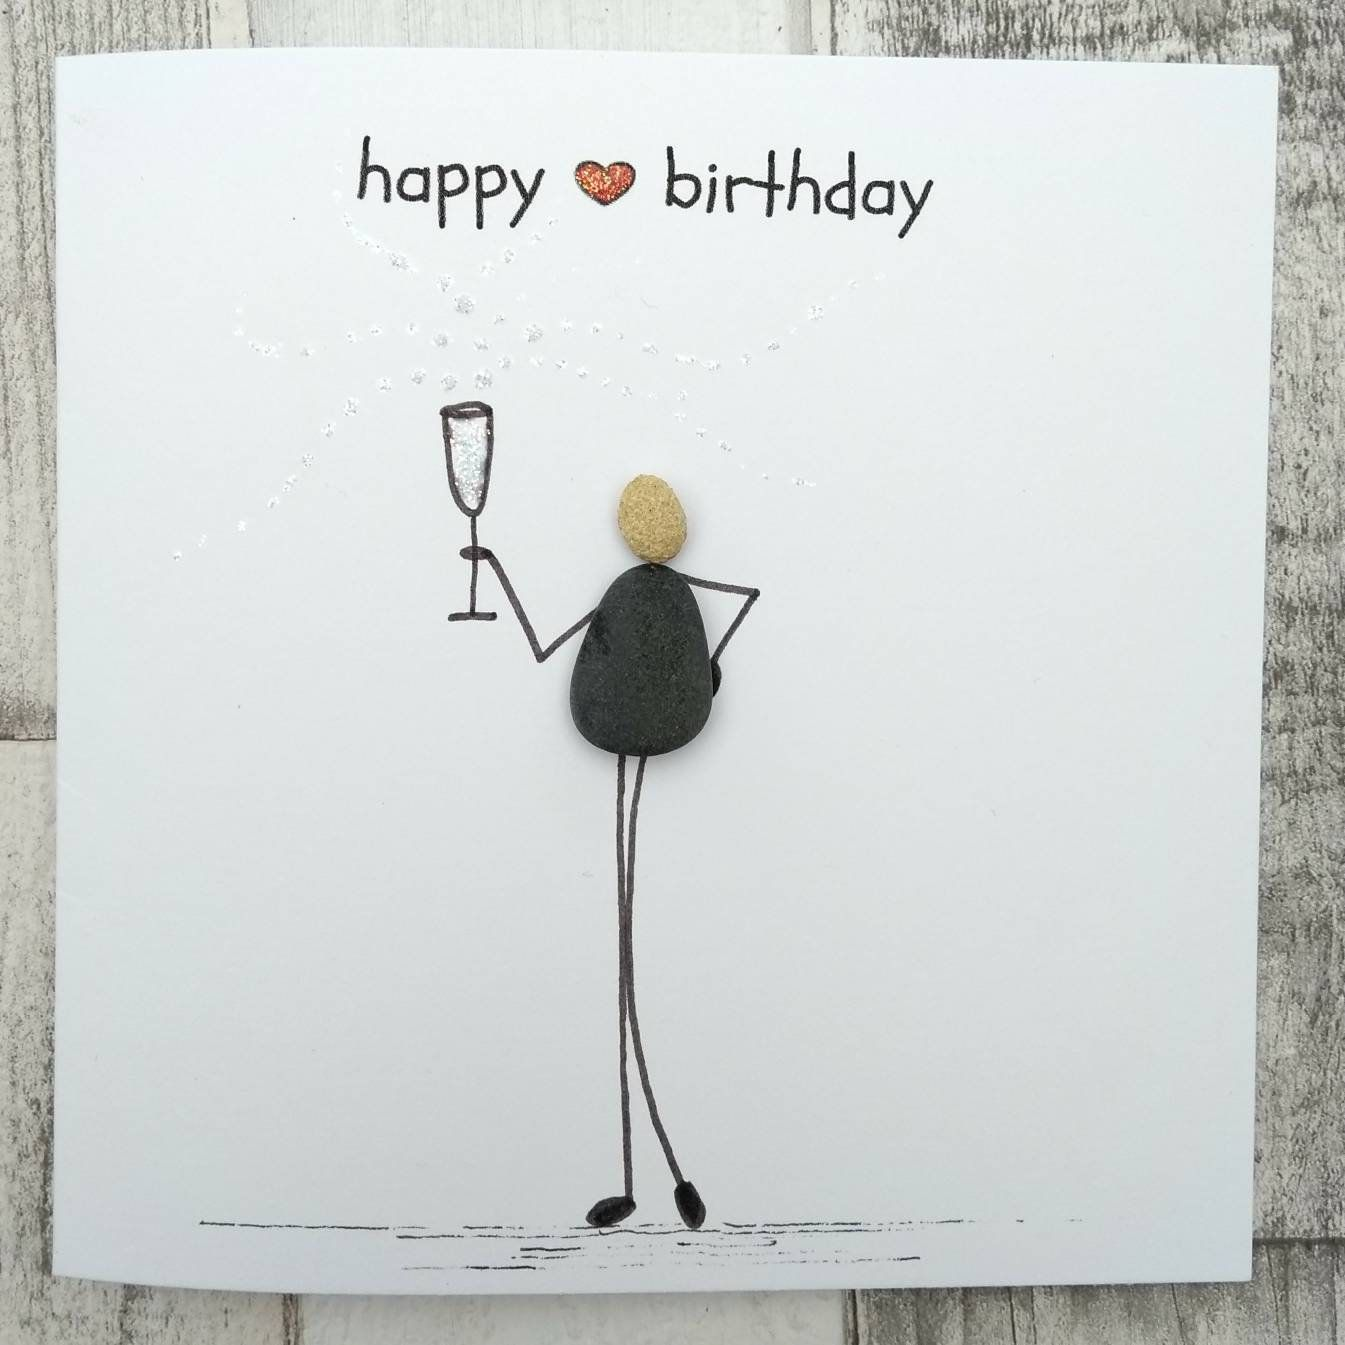 Birthday card pebble picture pebble art Stick man card prosecco lovers card Champagne lovers card unique card unusual card quirky card #bastelnmitsteinen